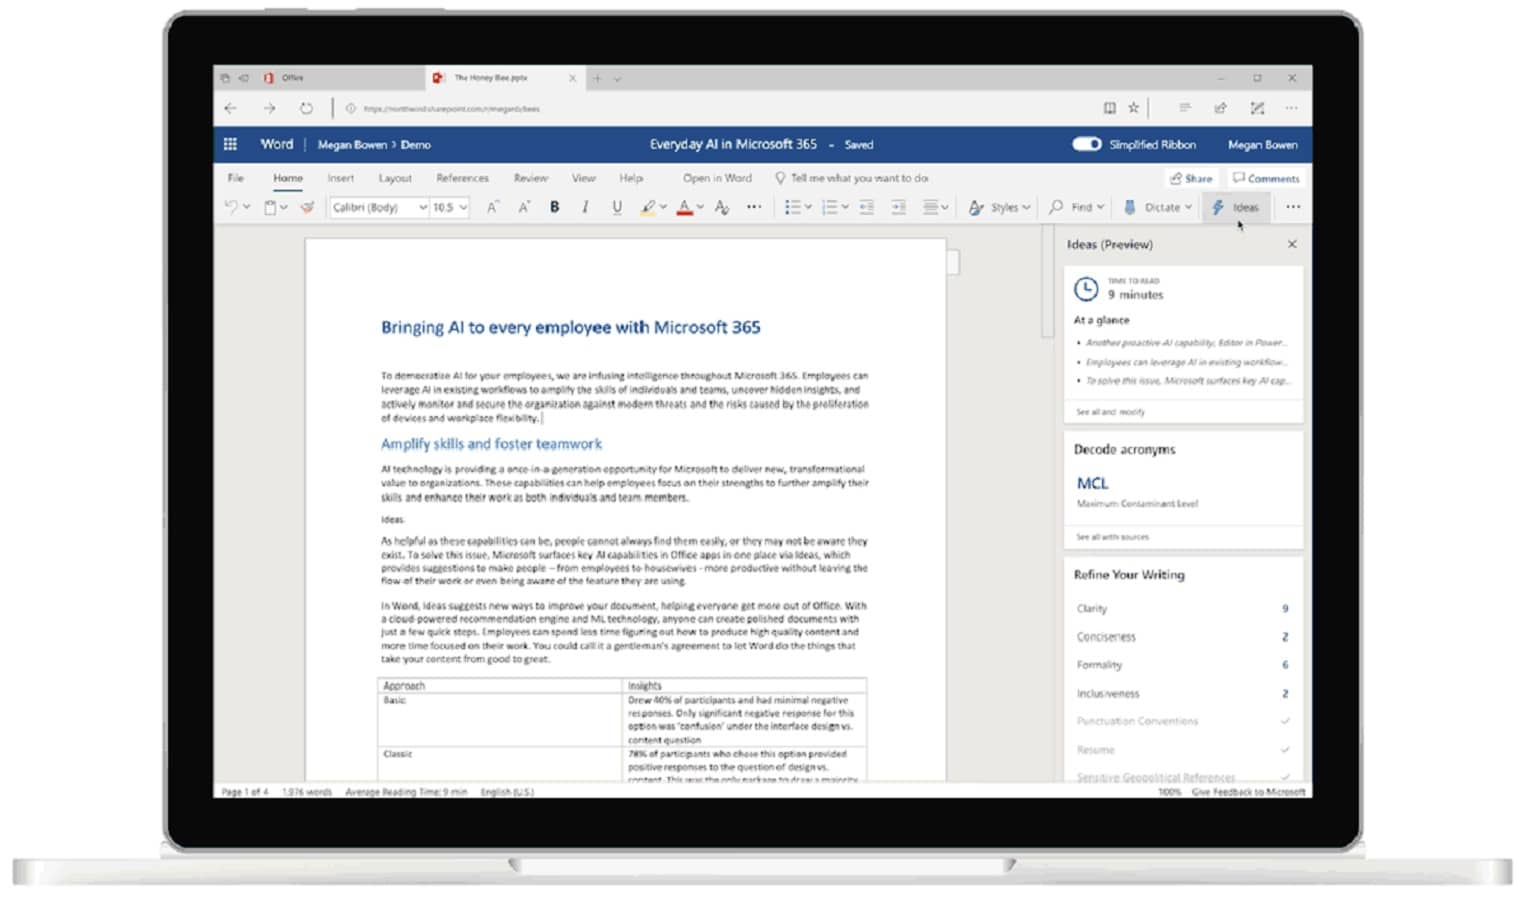 Microsoft takes on Grammarly with AI-based grammar